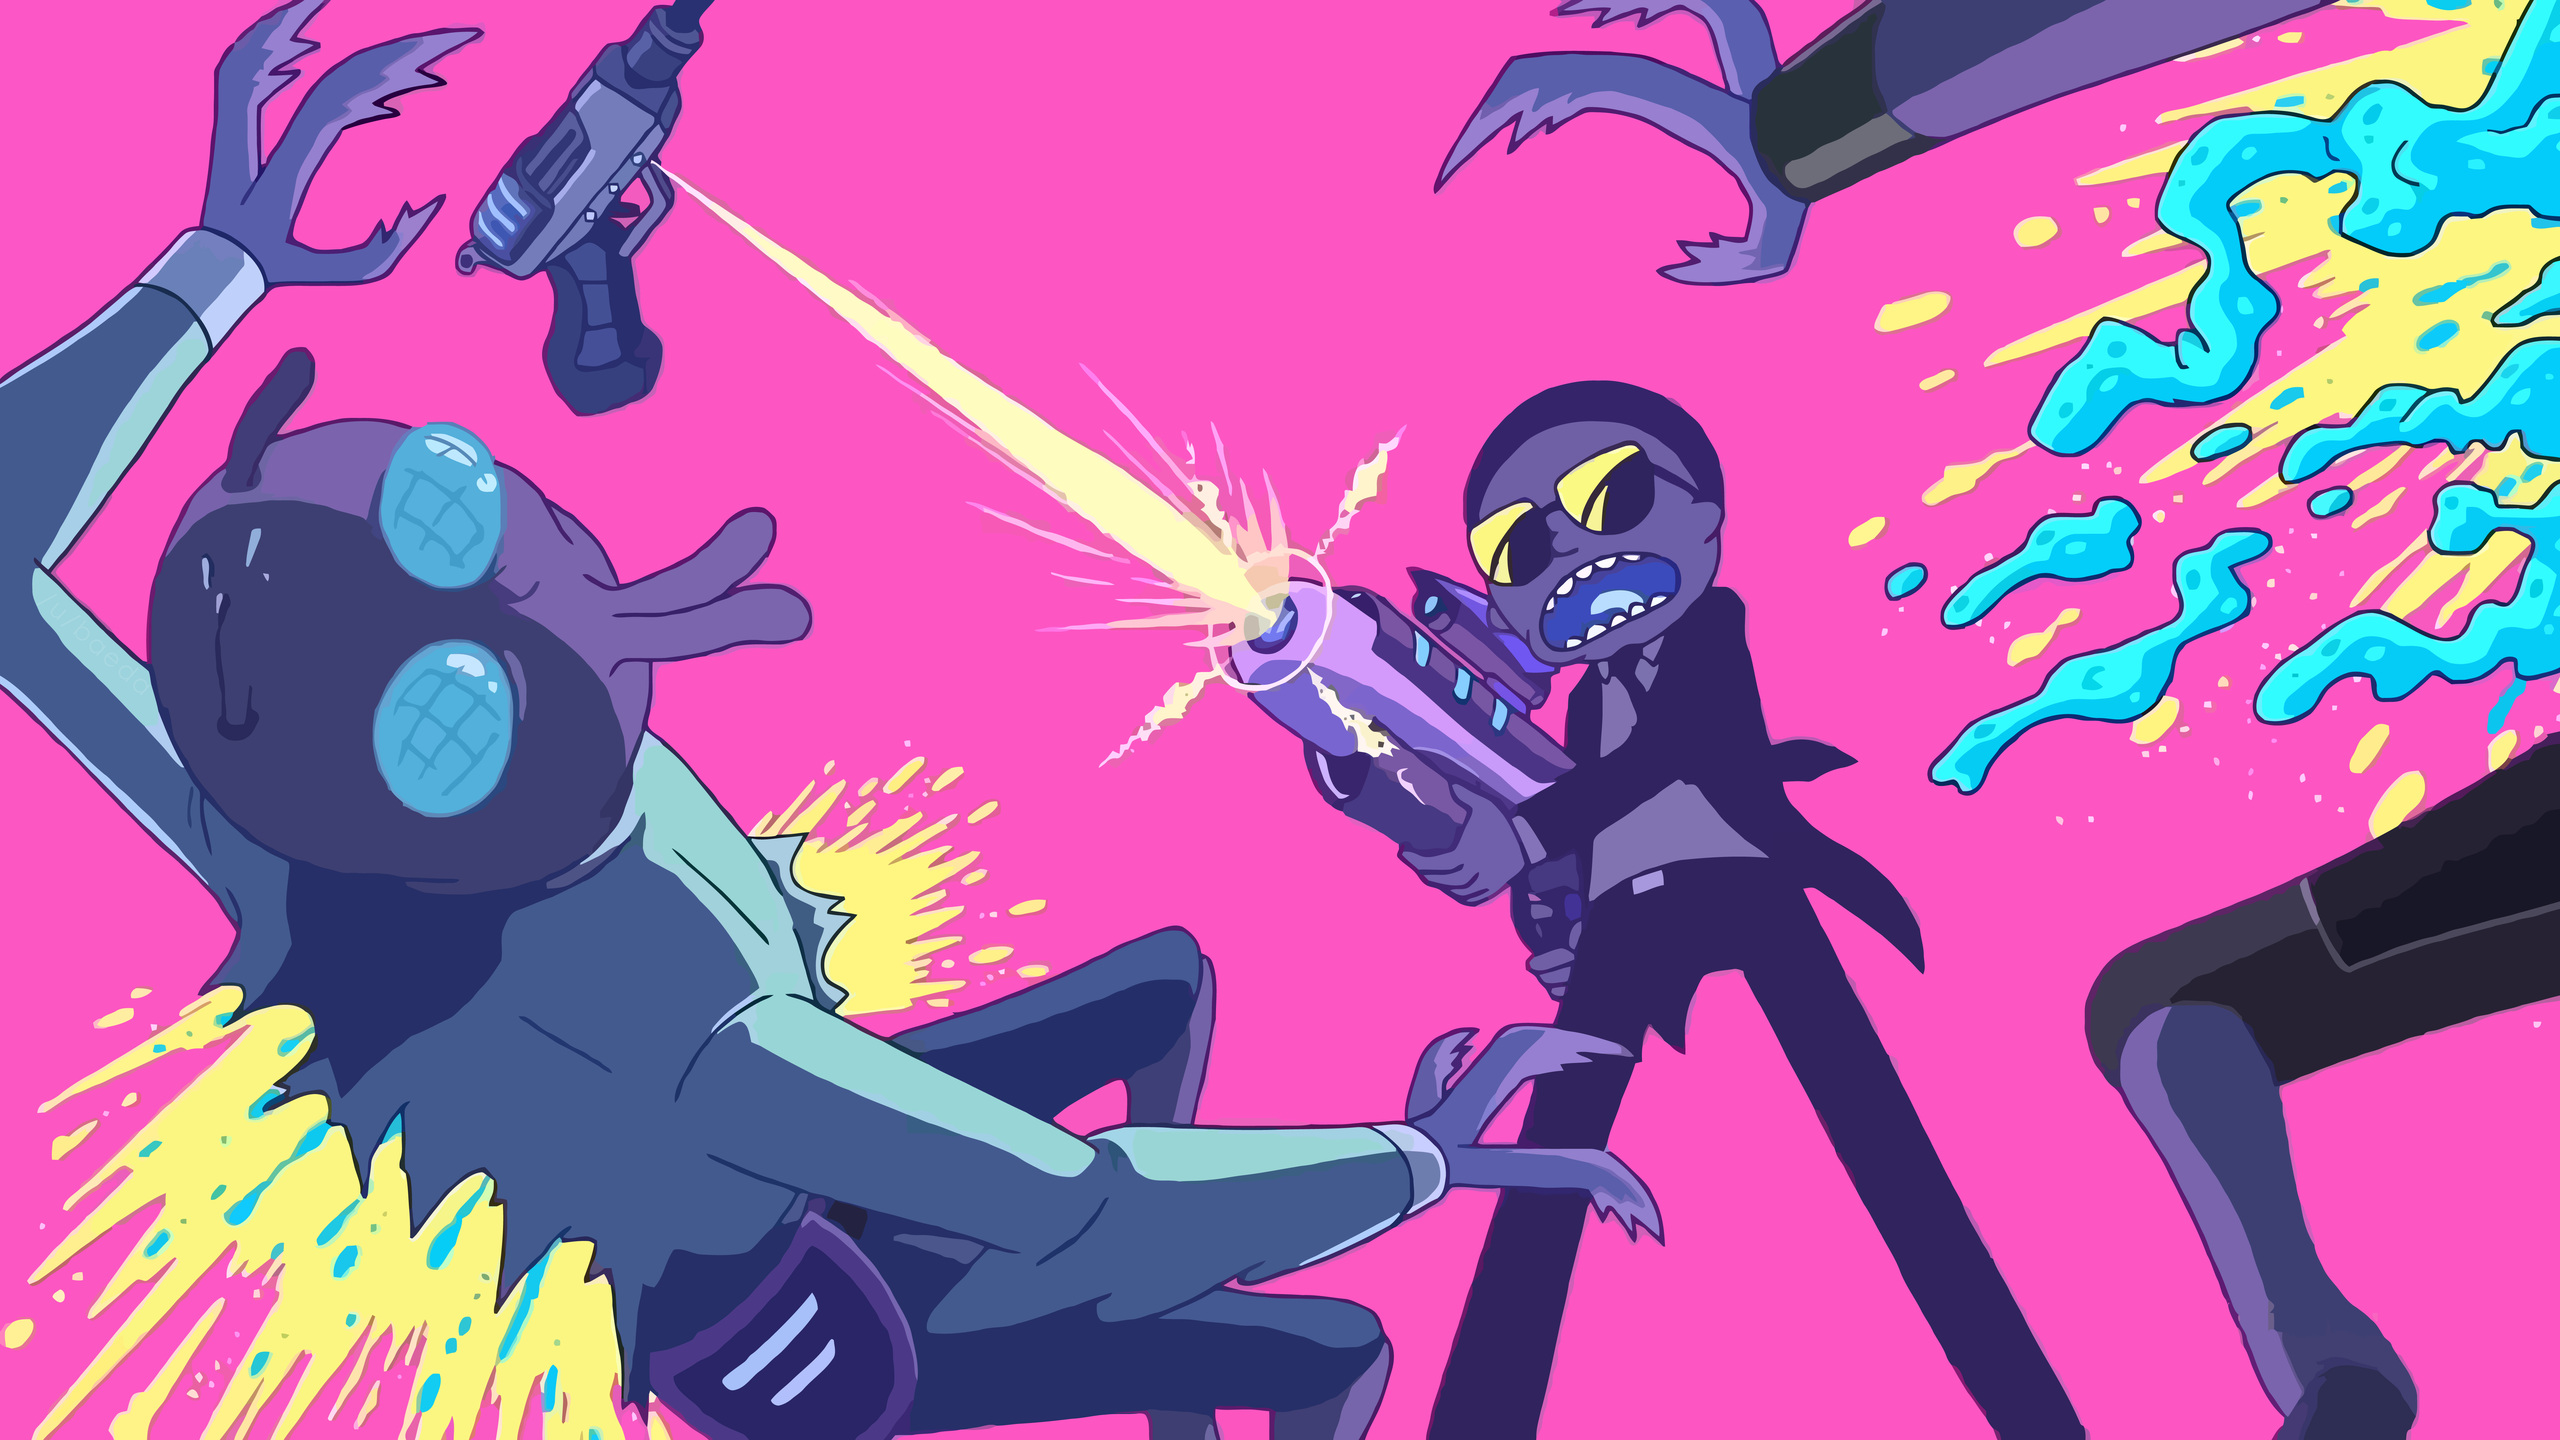 2560x1440 Morty 8k 1440P Resolution HD 4k Wallpapers ...